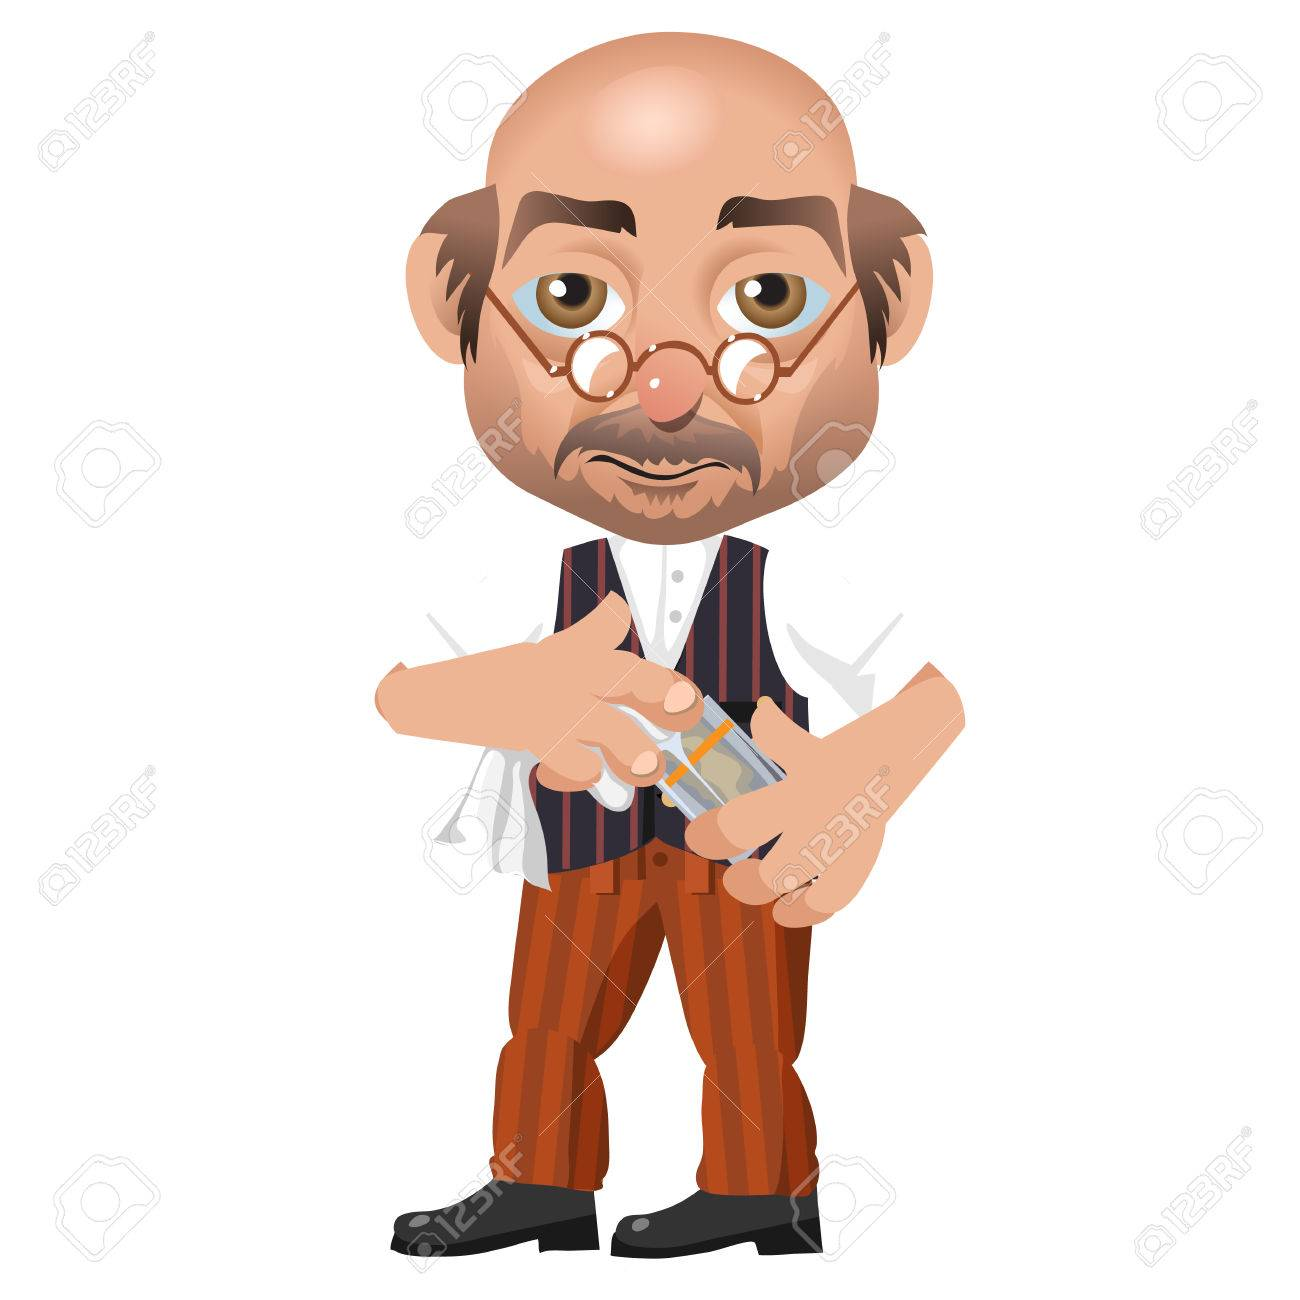 Bald Man With Glasses Bartender With A Glass Cartoon Character Royalty Free Cliparts Vectors And Stock Illustration Image 57600919